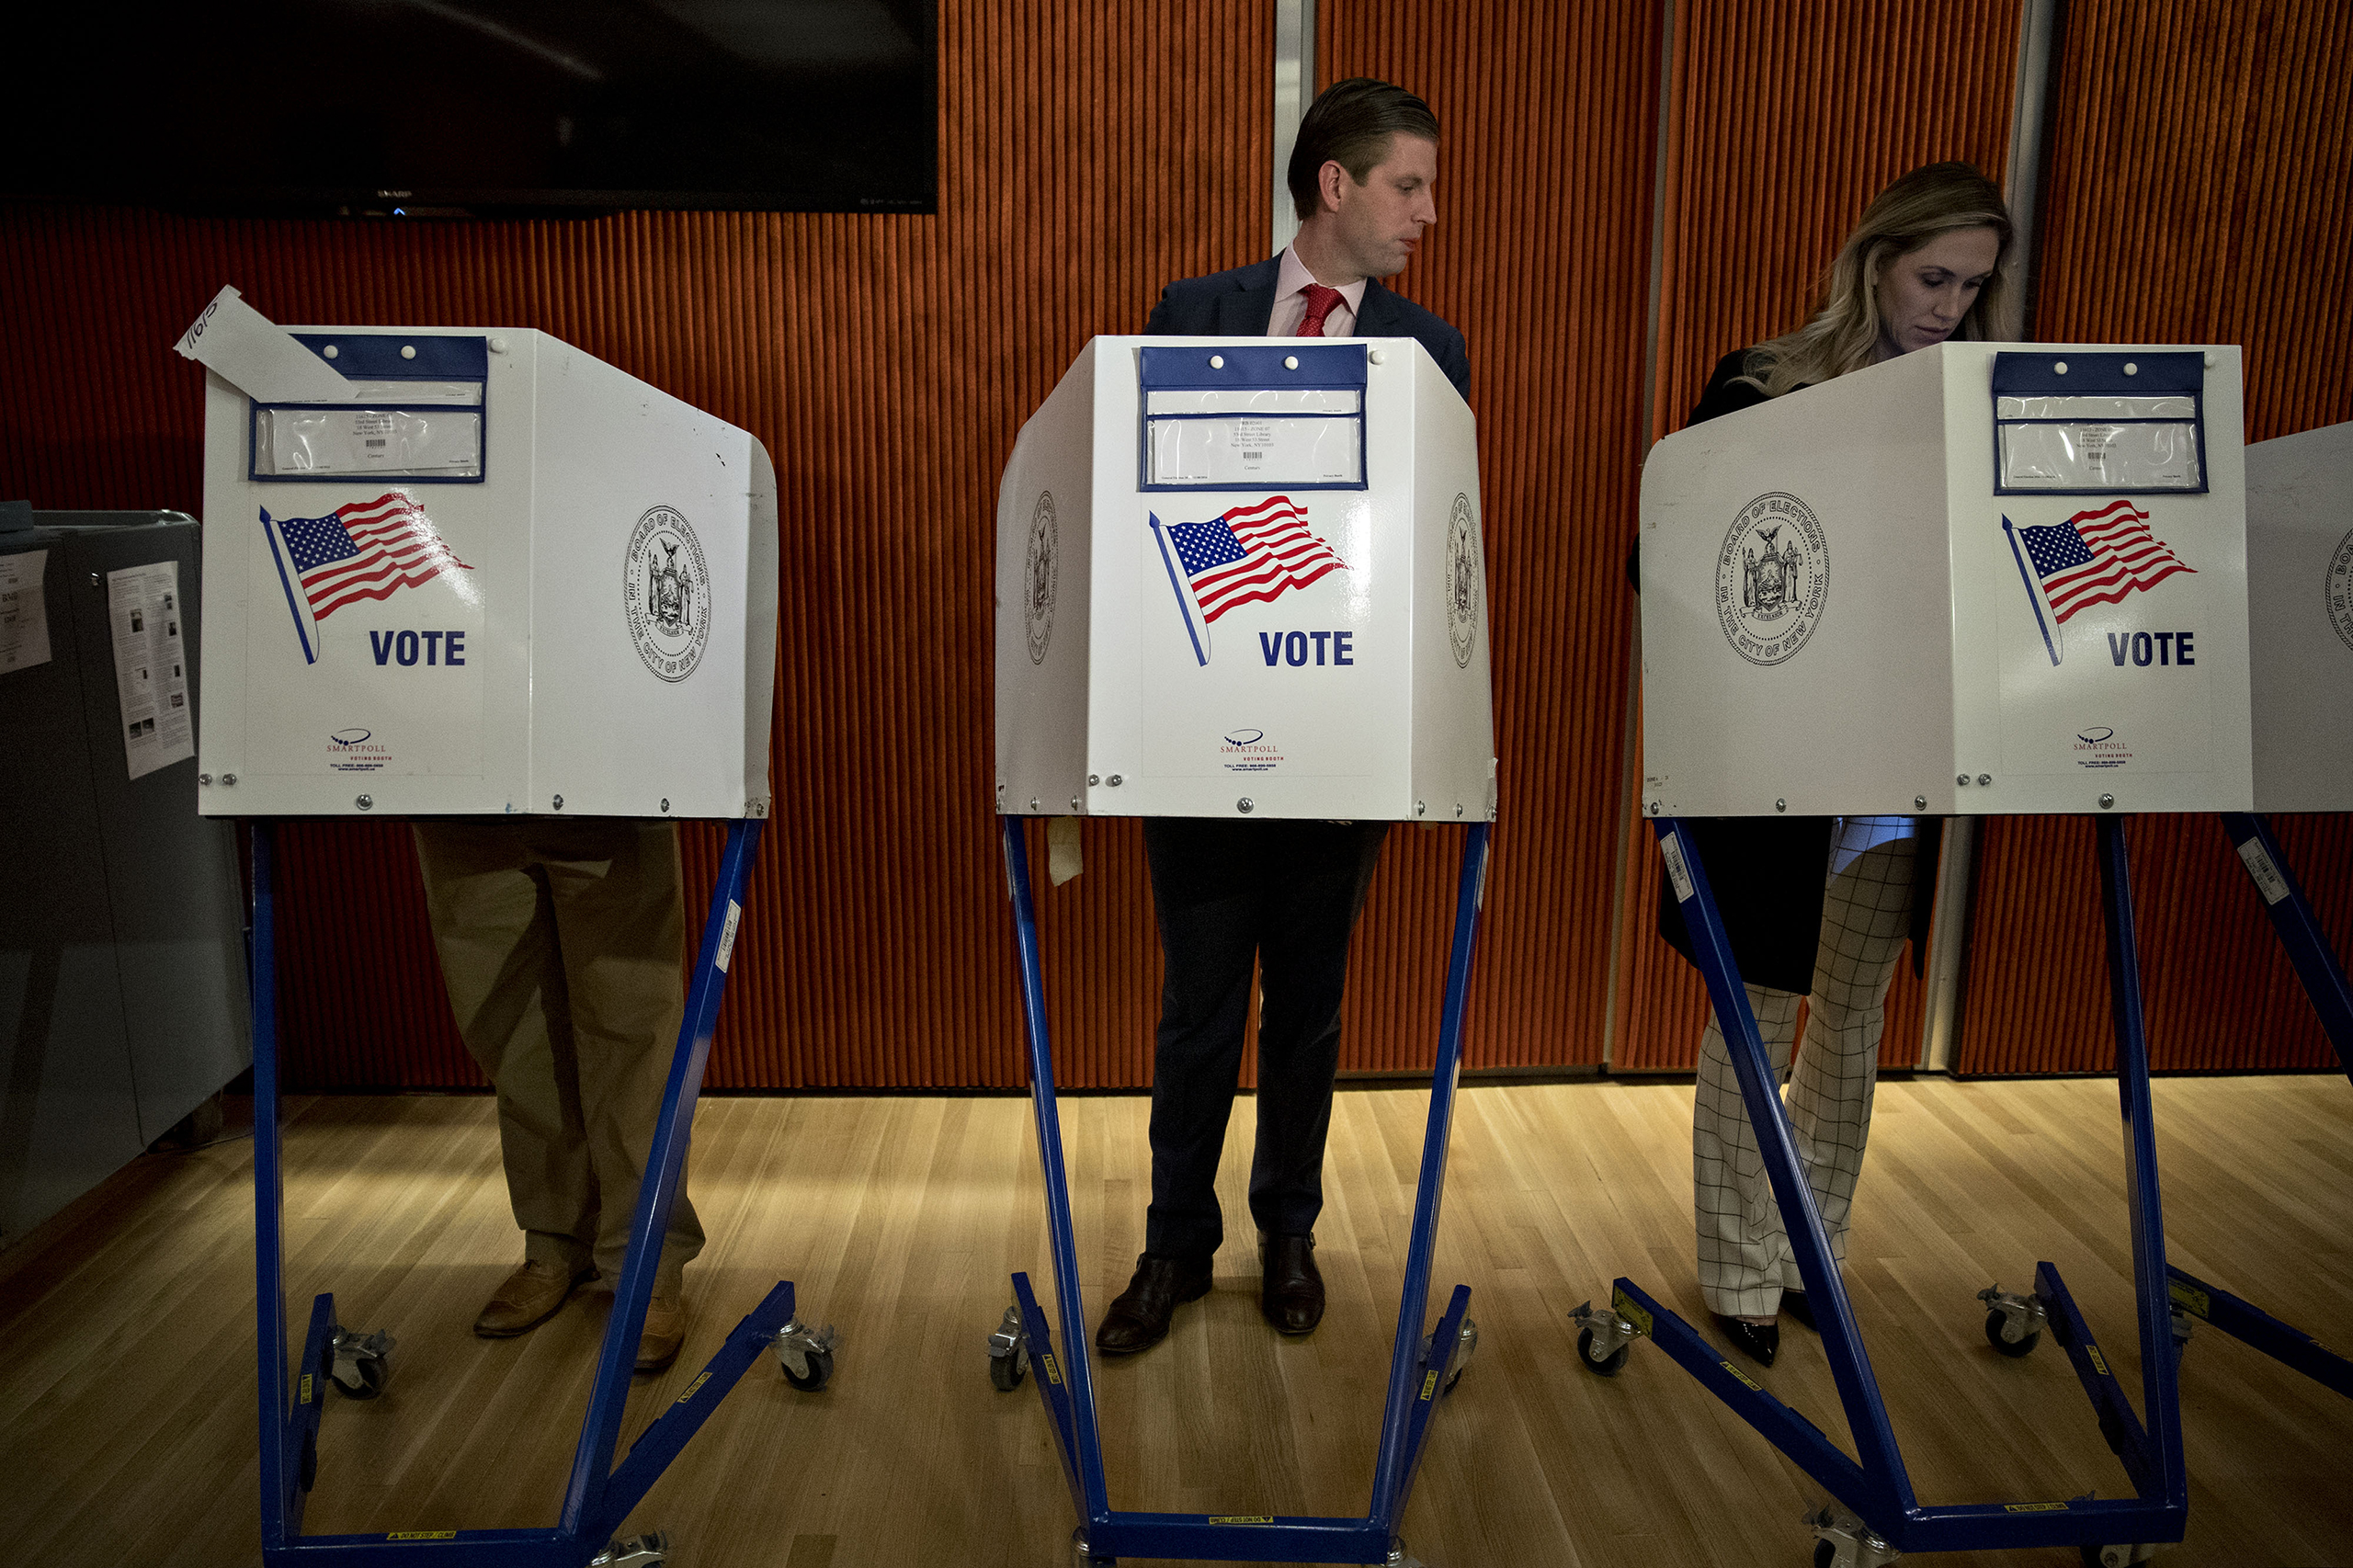 Eric Trump, son of of Republican presidential nominee Donald Trump, looks at his wife Lara's voting booth at the 53rd Street Library in New York, on Nov. 8, 2016.